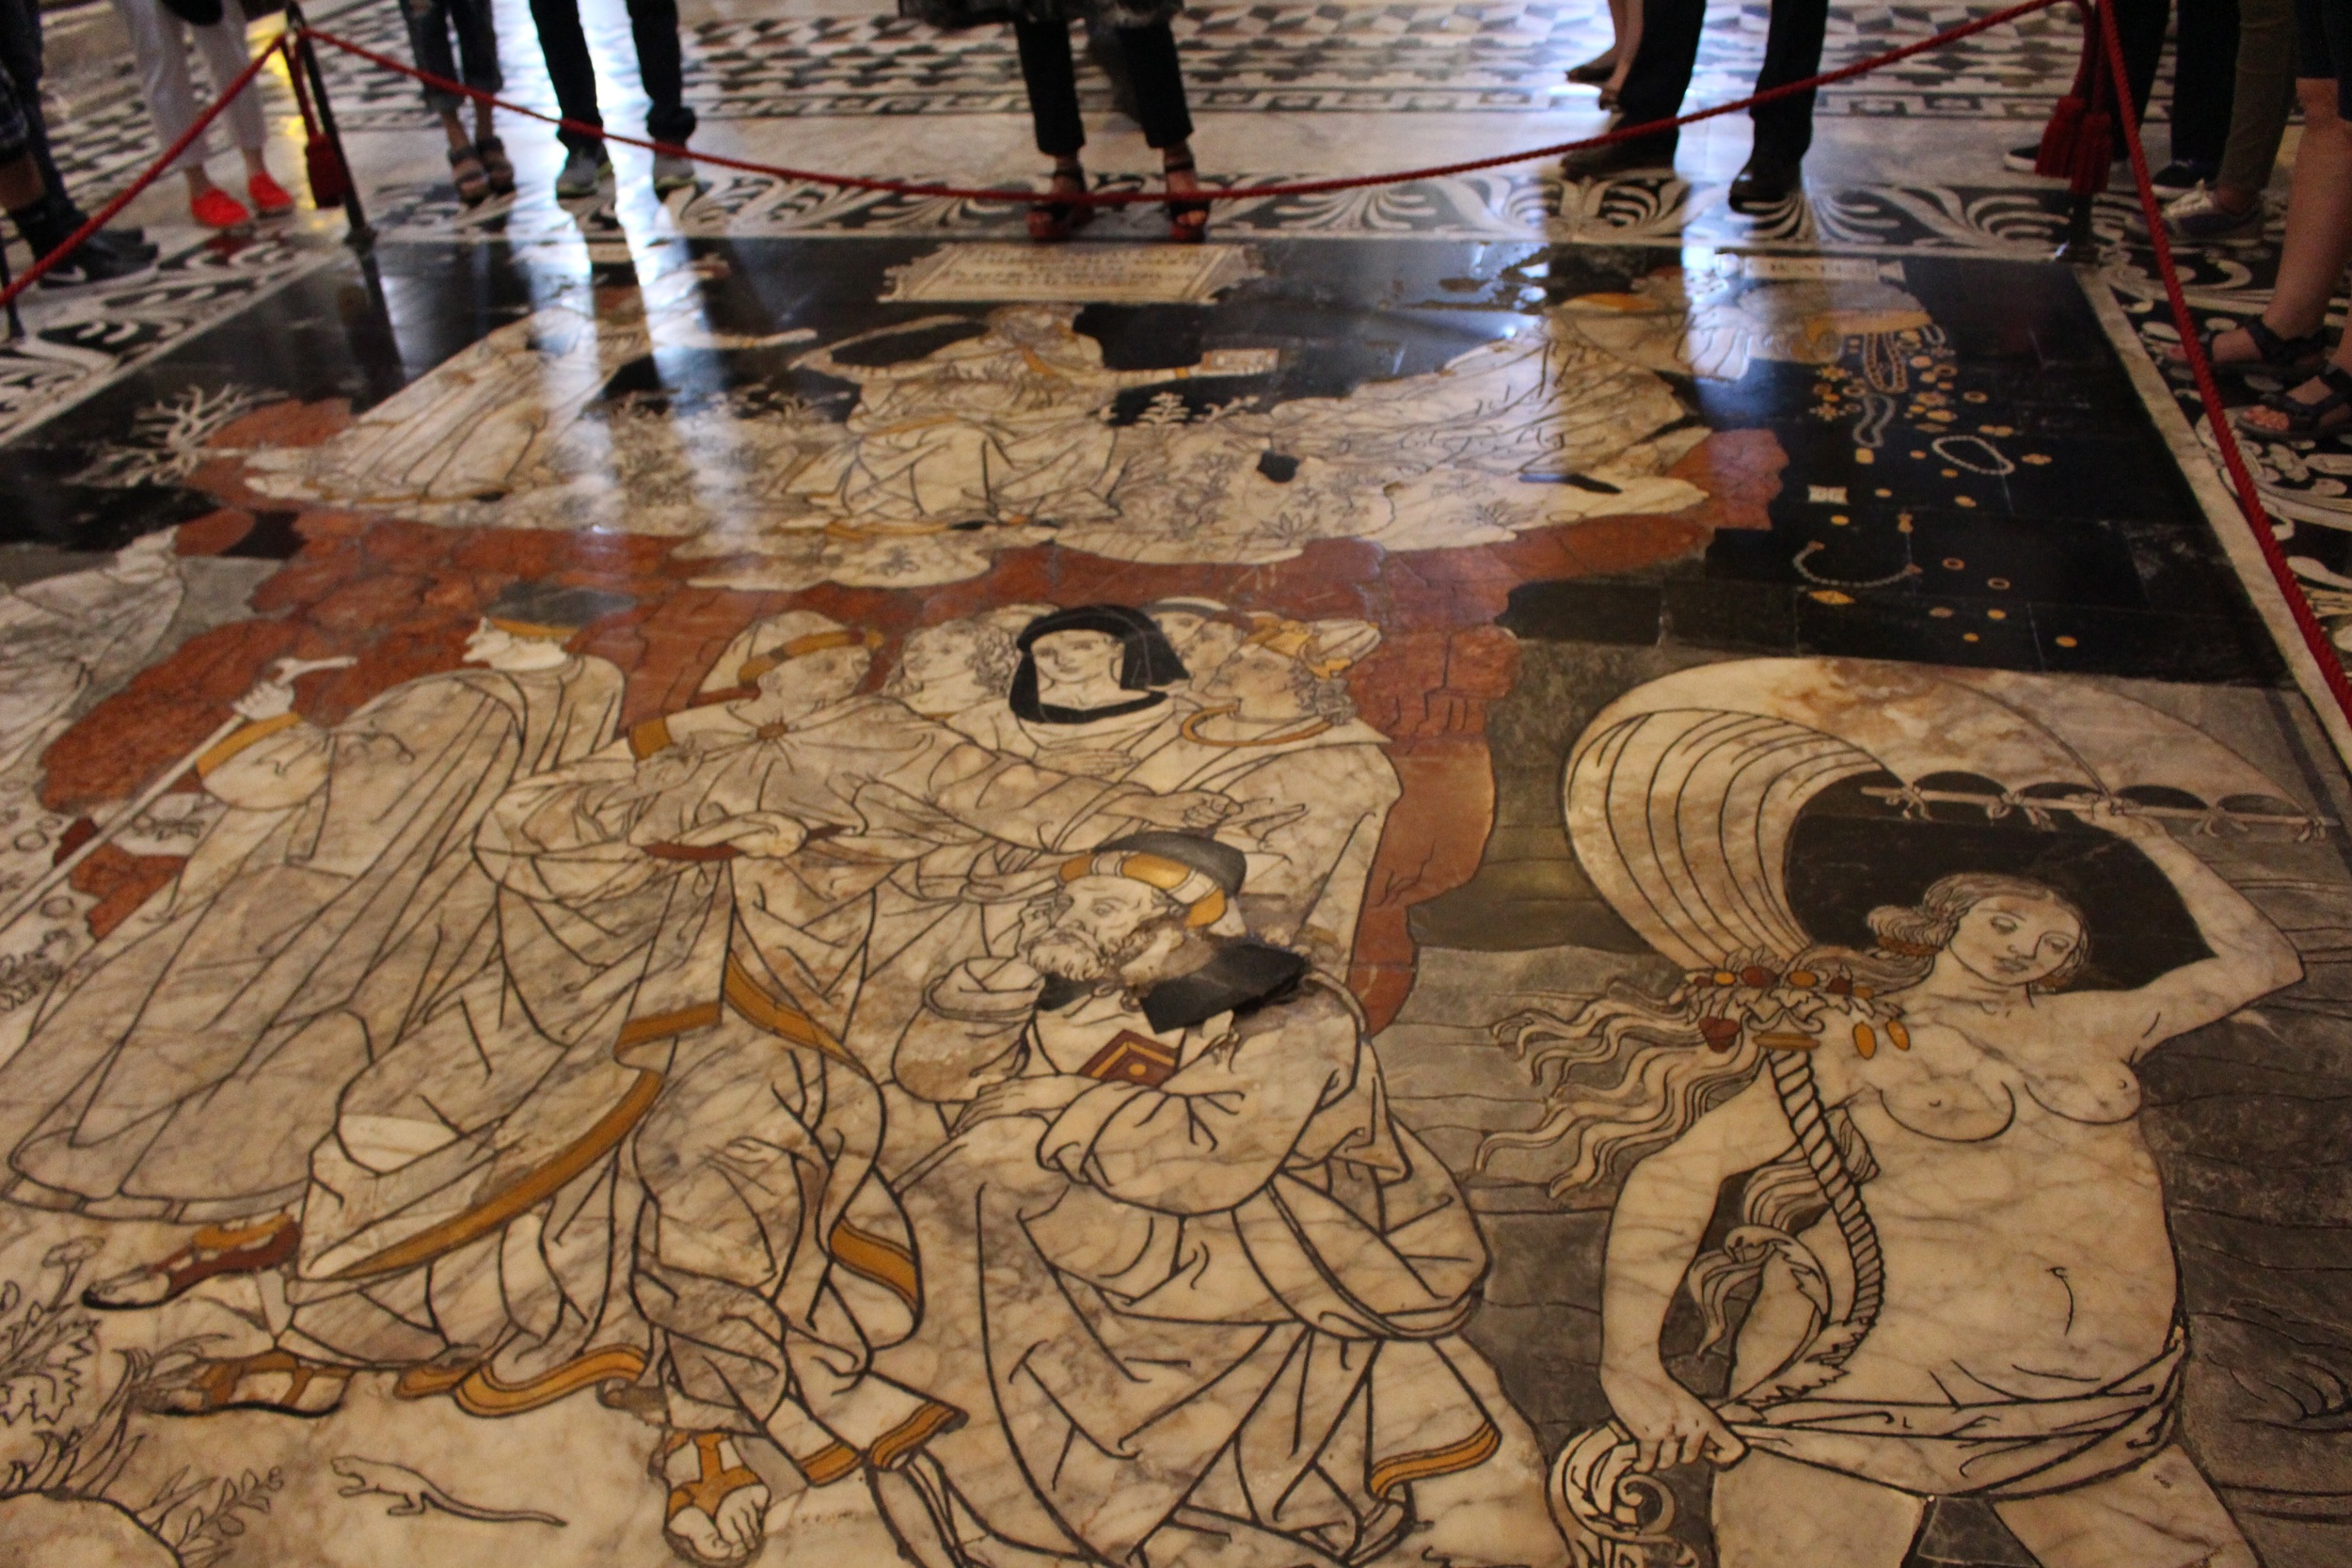 The whole floor was made of marble artwork